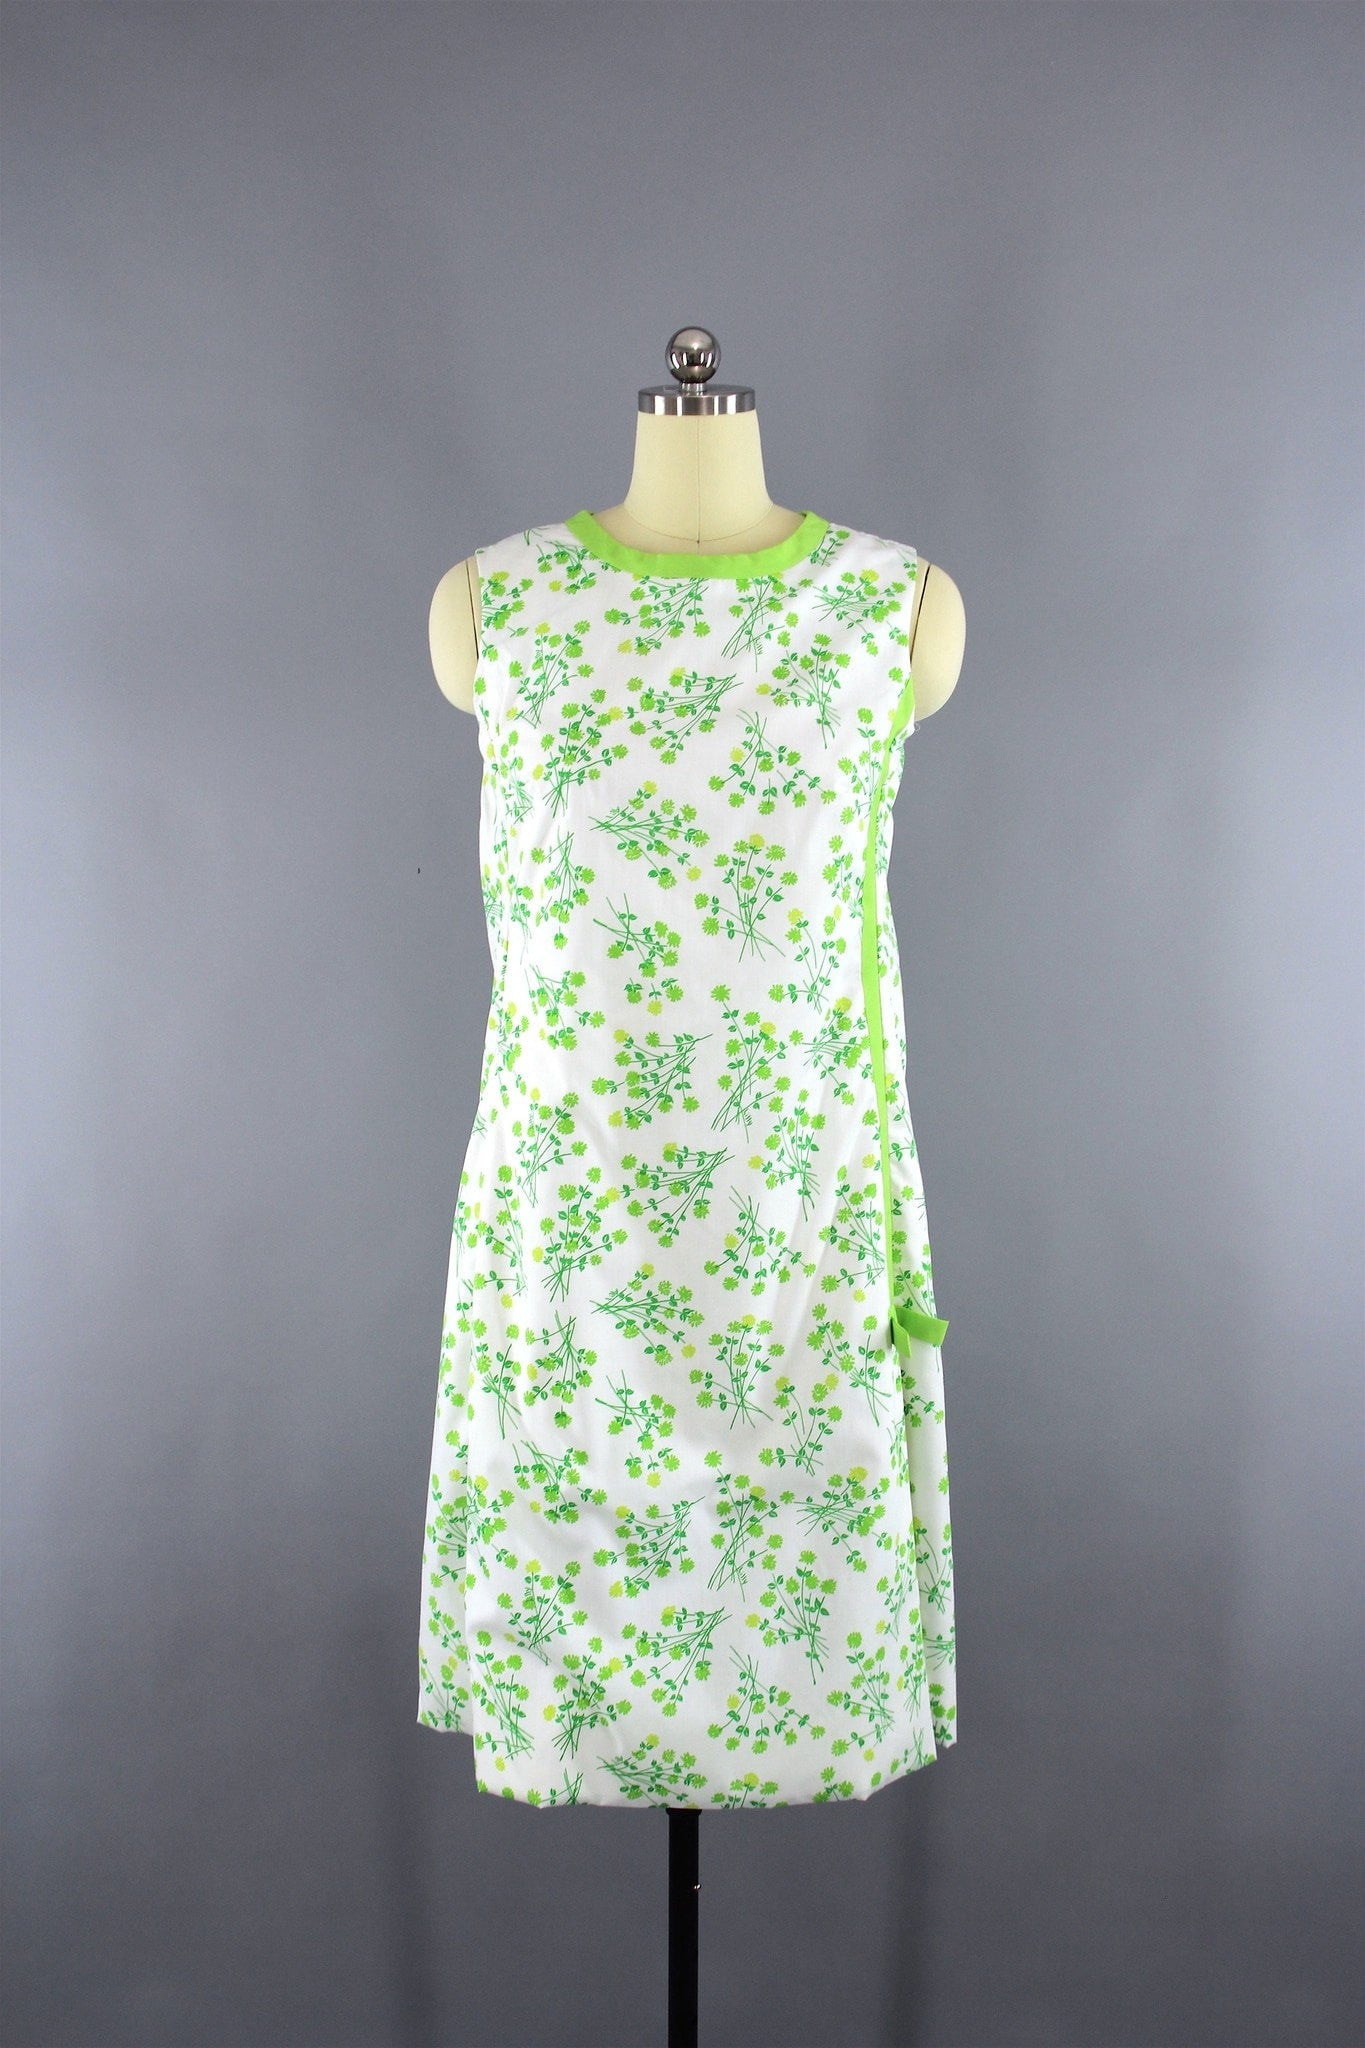 3434b4440a758d Vintage 1960s Green Floral Print Lilly Pulitzer Dress